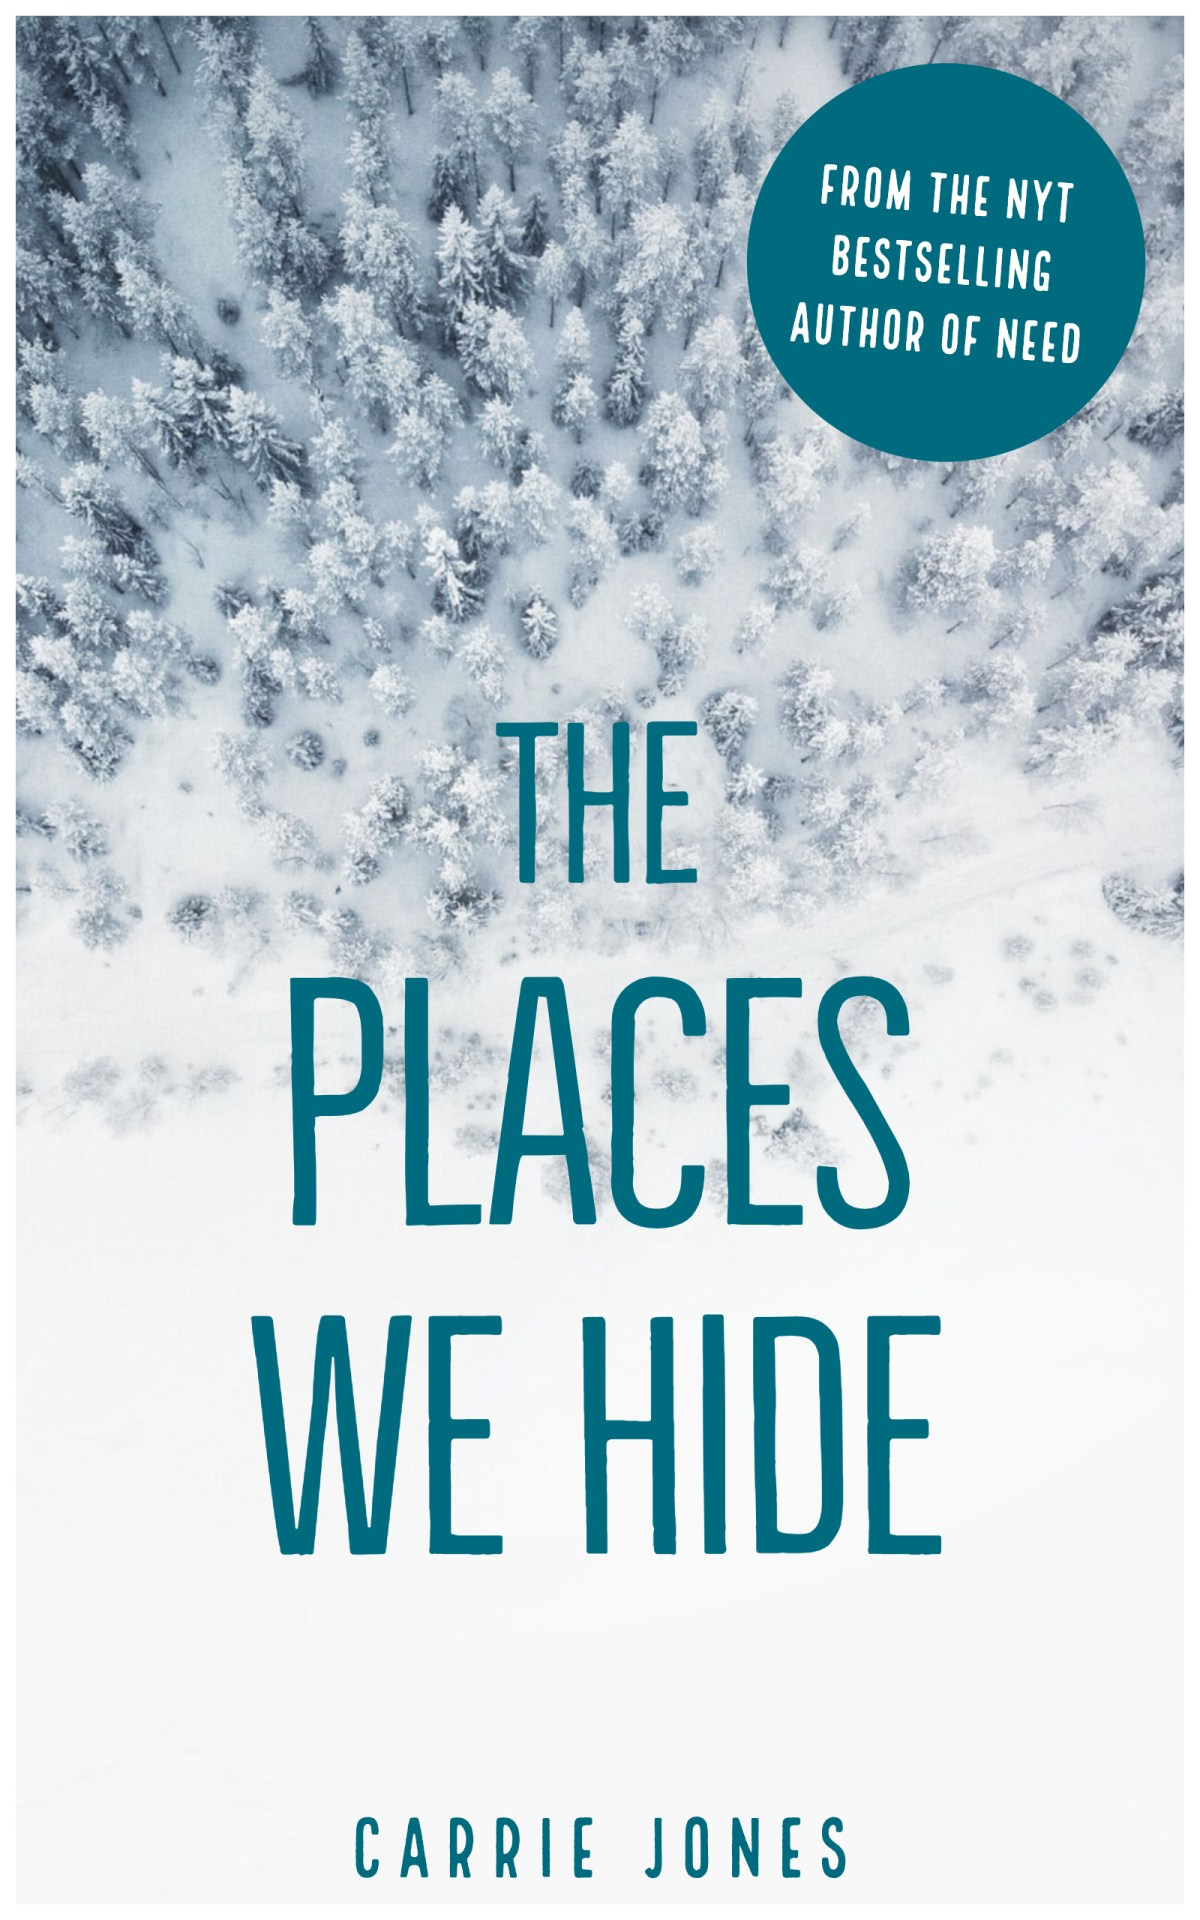 The Places We Hide – an Excerpt